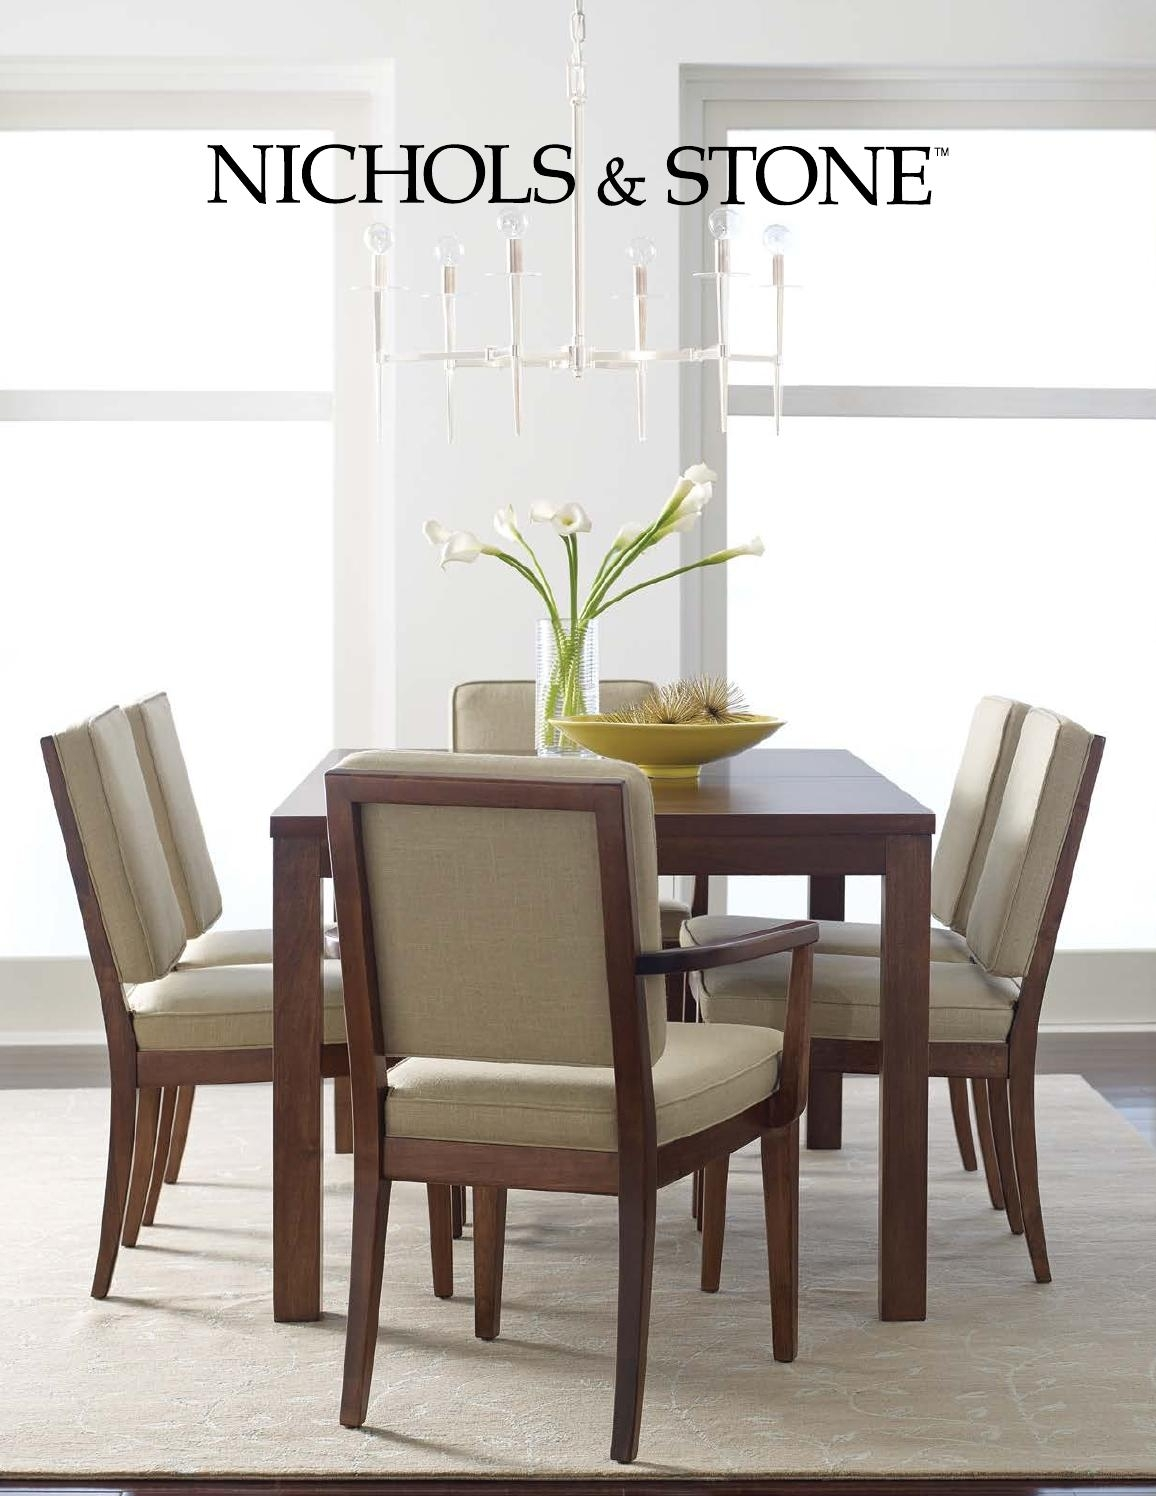 Nichols & Stone Catalogstickley – Issuu Intended For Most Recent Walden Extension Dining Tables (Image 8 of 20)